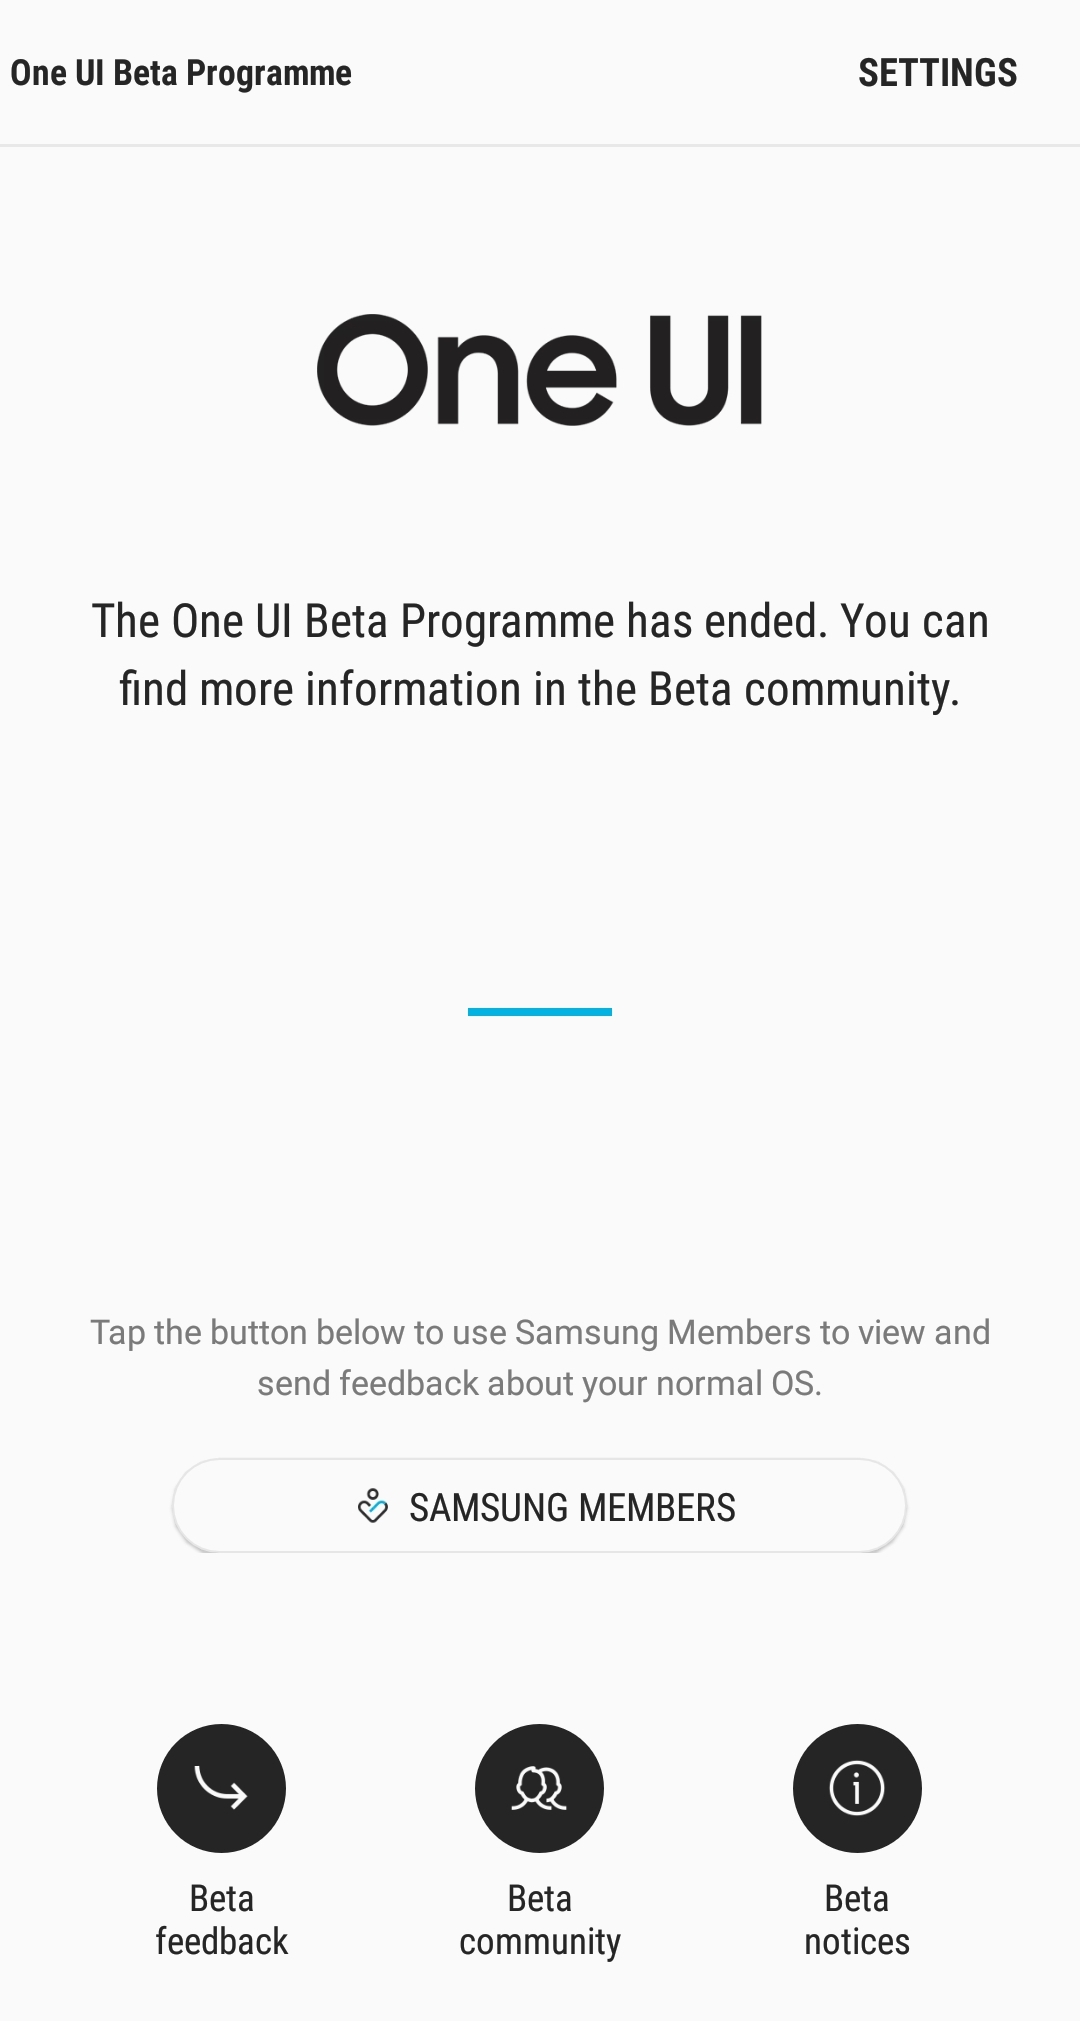 samsung members app not compatible with s8+